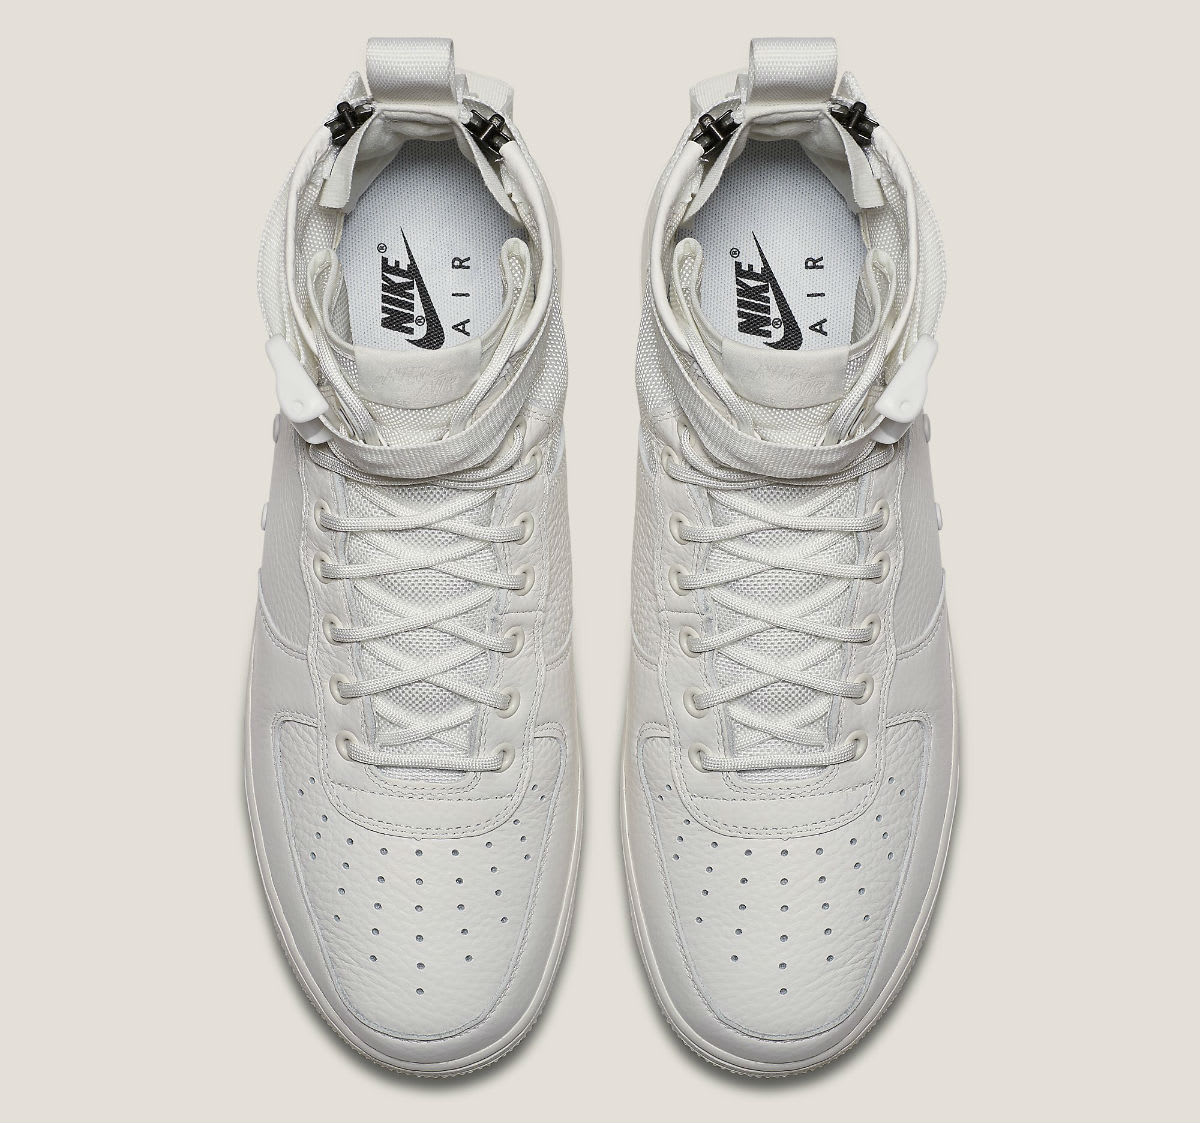 Nike Special Field Air Force 1 Mid Ivory Release Date Top AA6655-100